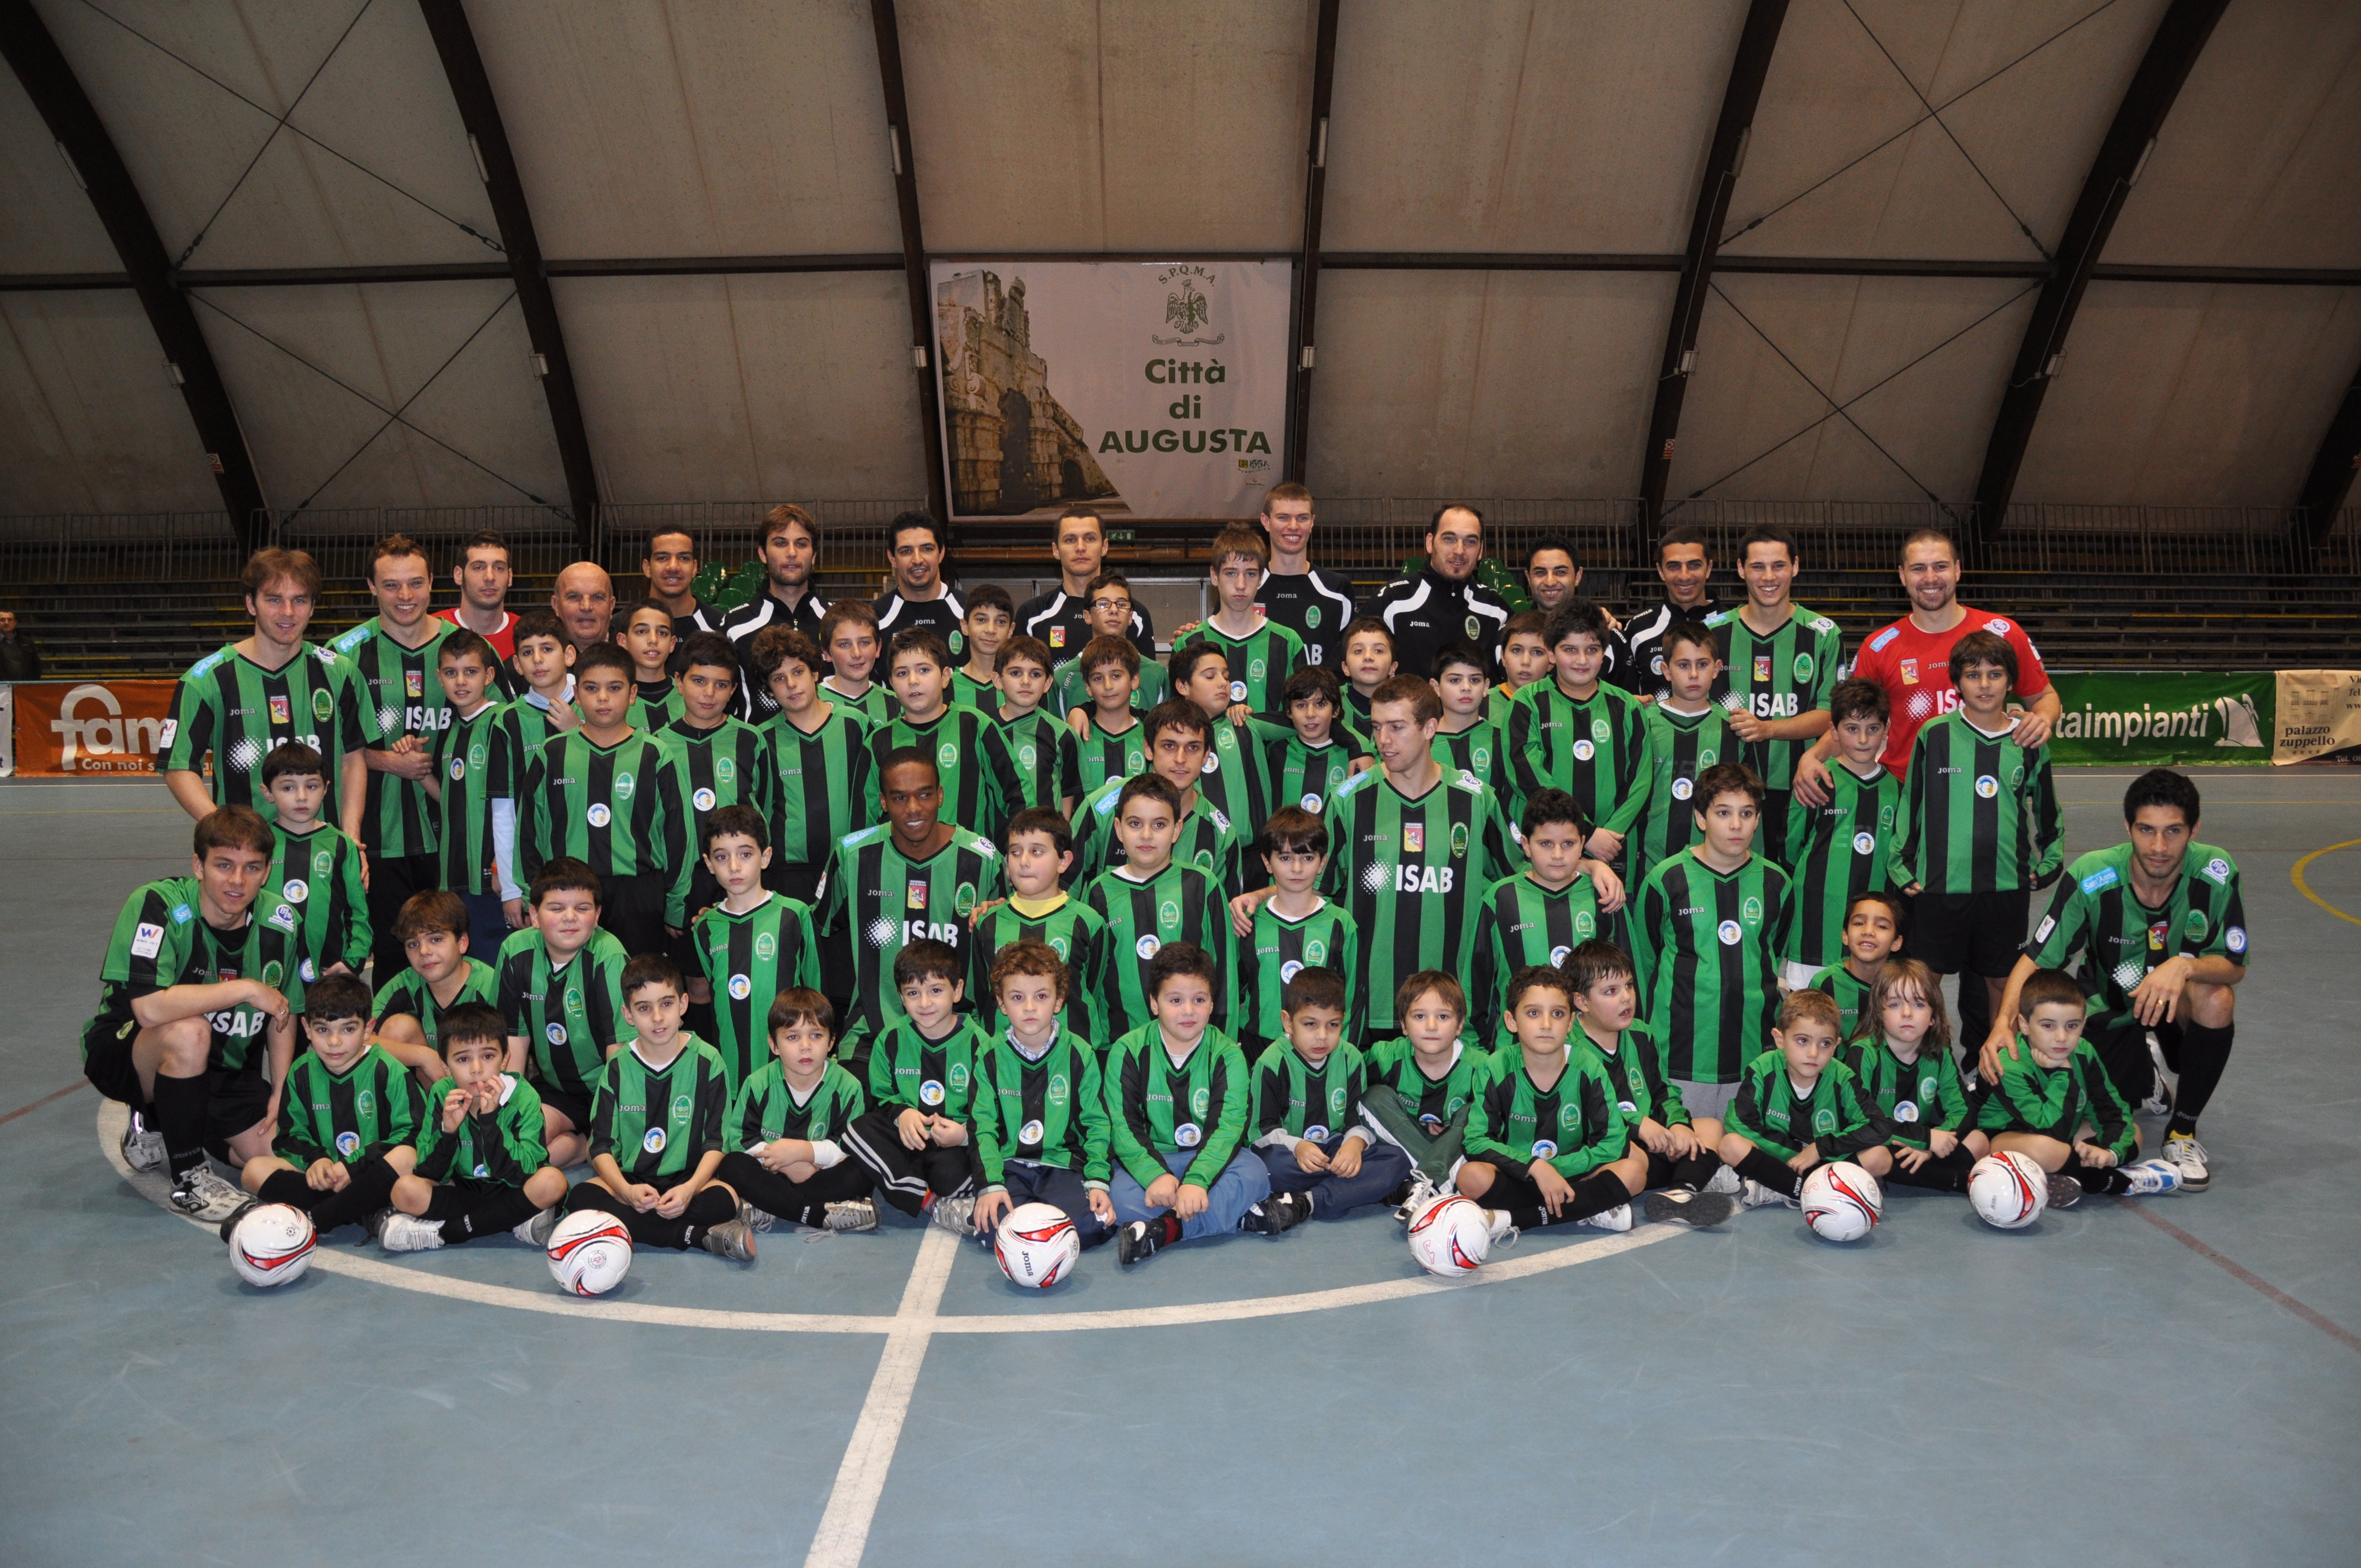 L'AUGUSTA ALL'UEFA GRASSROOTS FESTIVAL